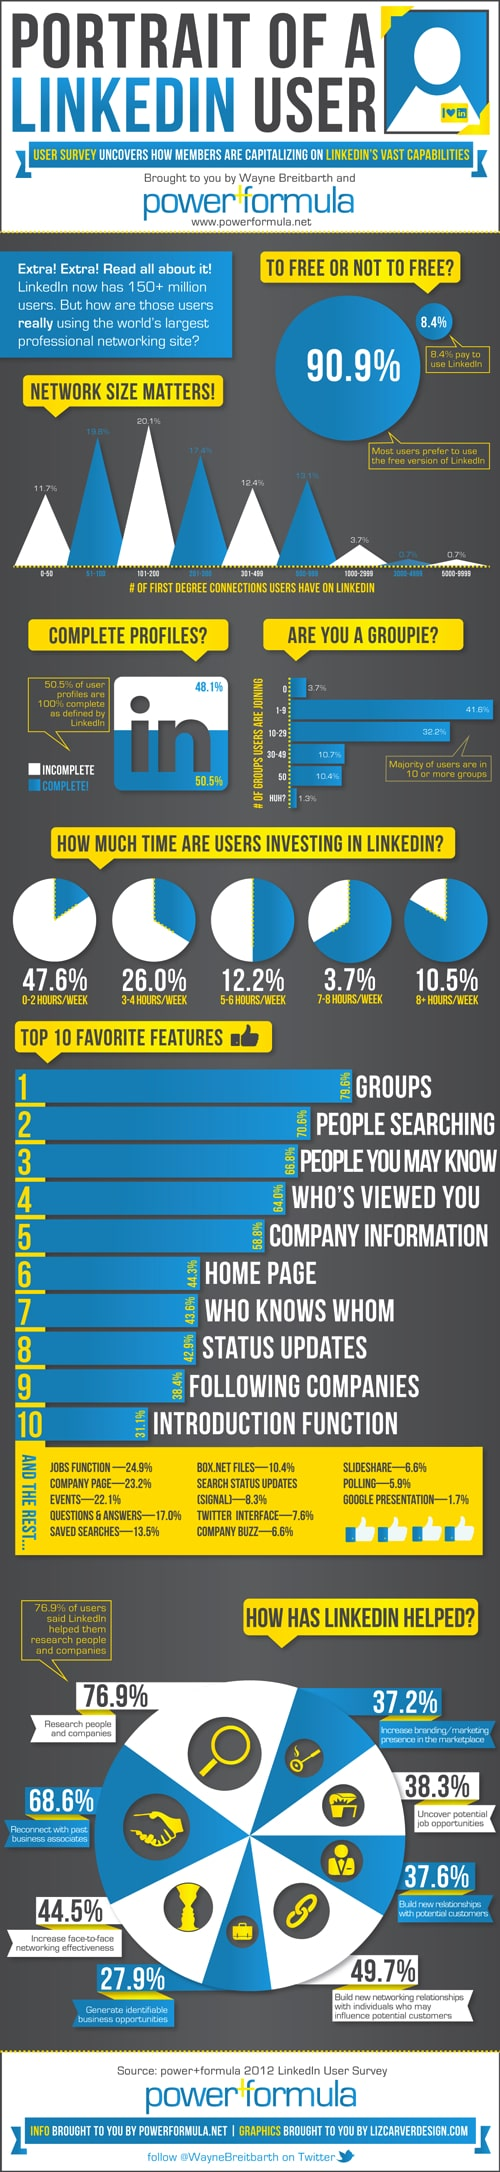 LinkedIn User Stats: By Network, Profiles, Groups and Applications